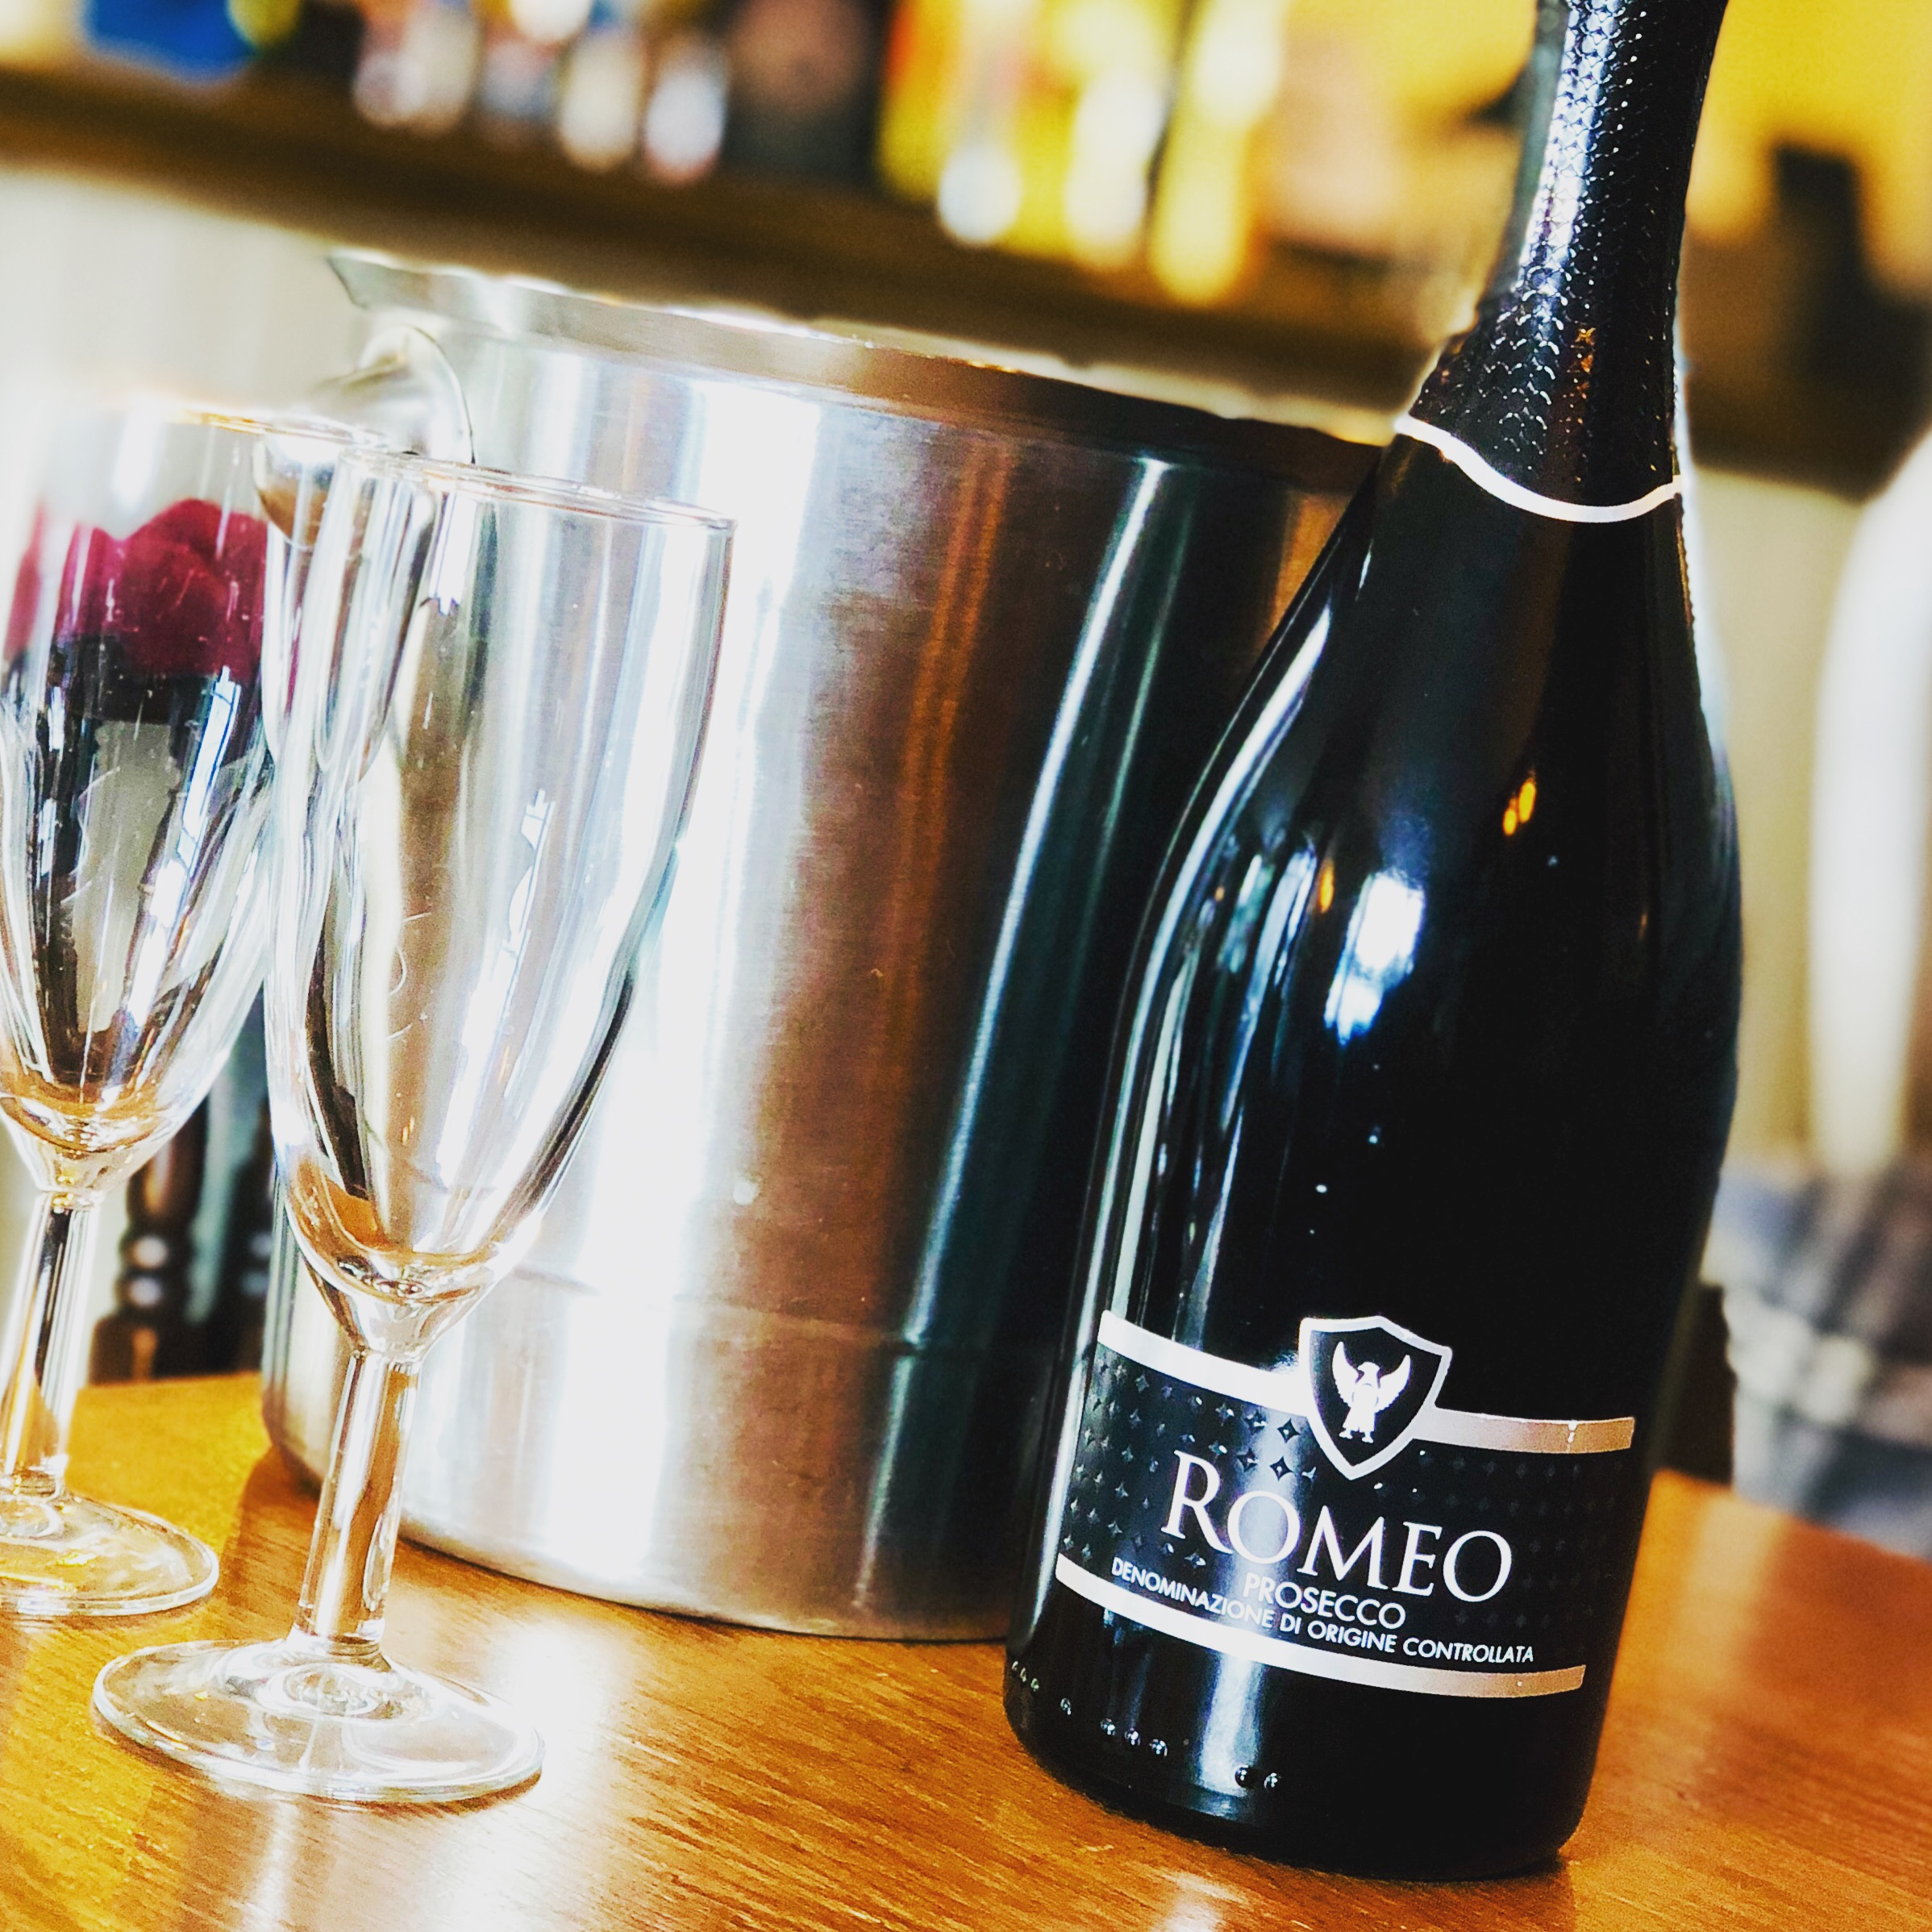 FEELIN' BUBBLY? - Enjoy £5 OFF Romeo Prosecco Spumante every Friday from 5pm. Excludes Bank Holidays